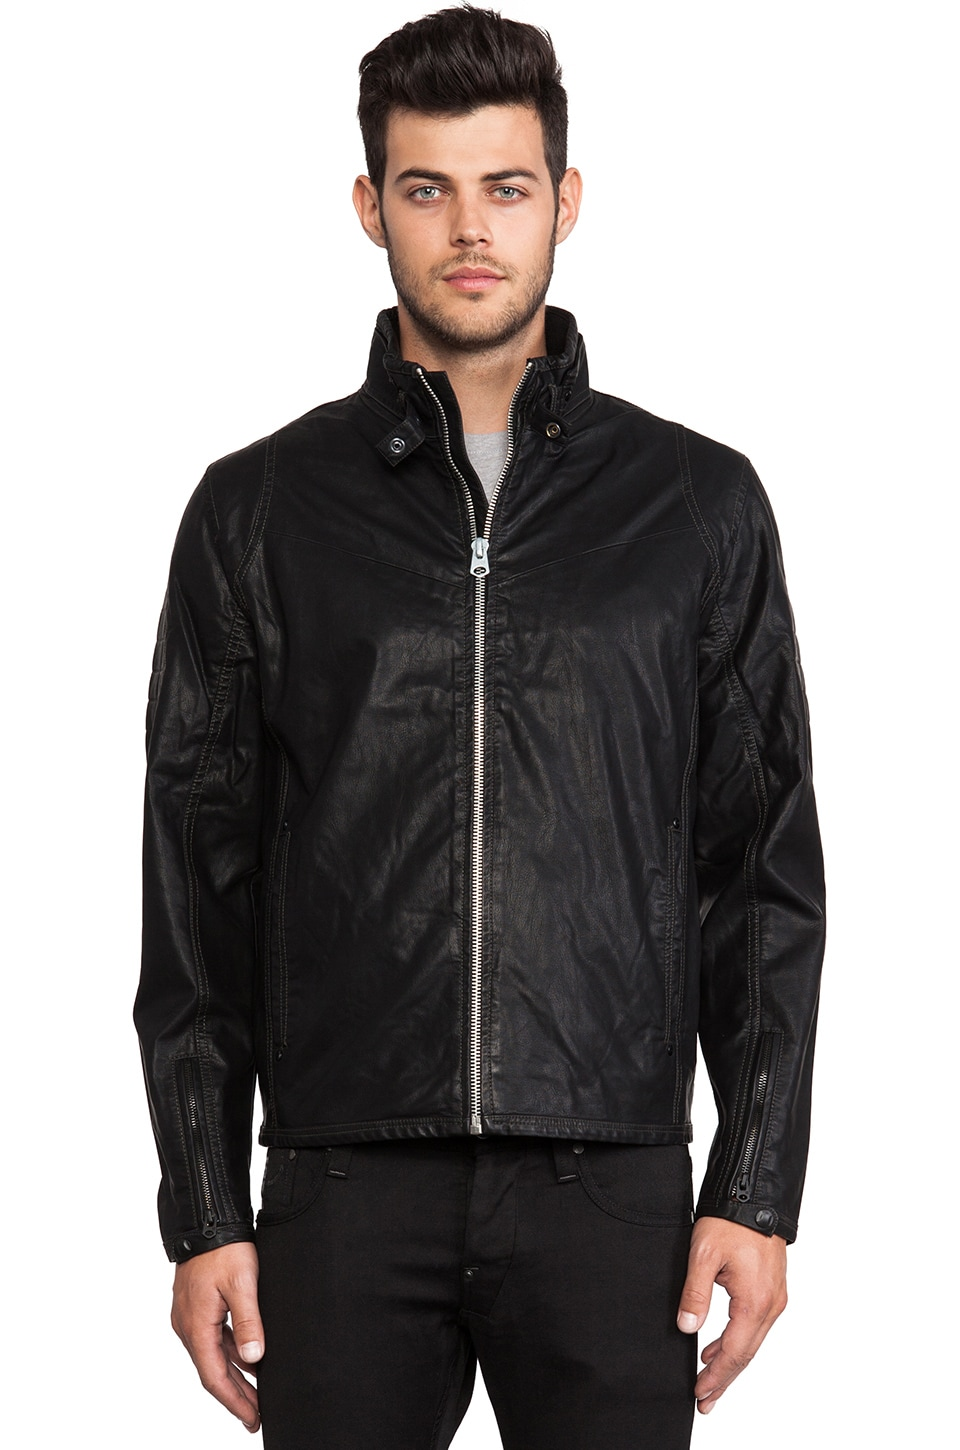 G-Star Jack Vegan Leather Jacket in Black